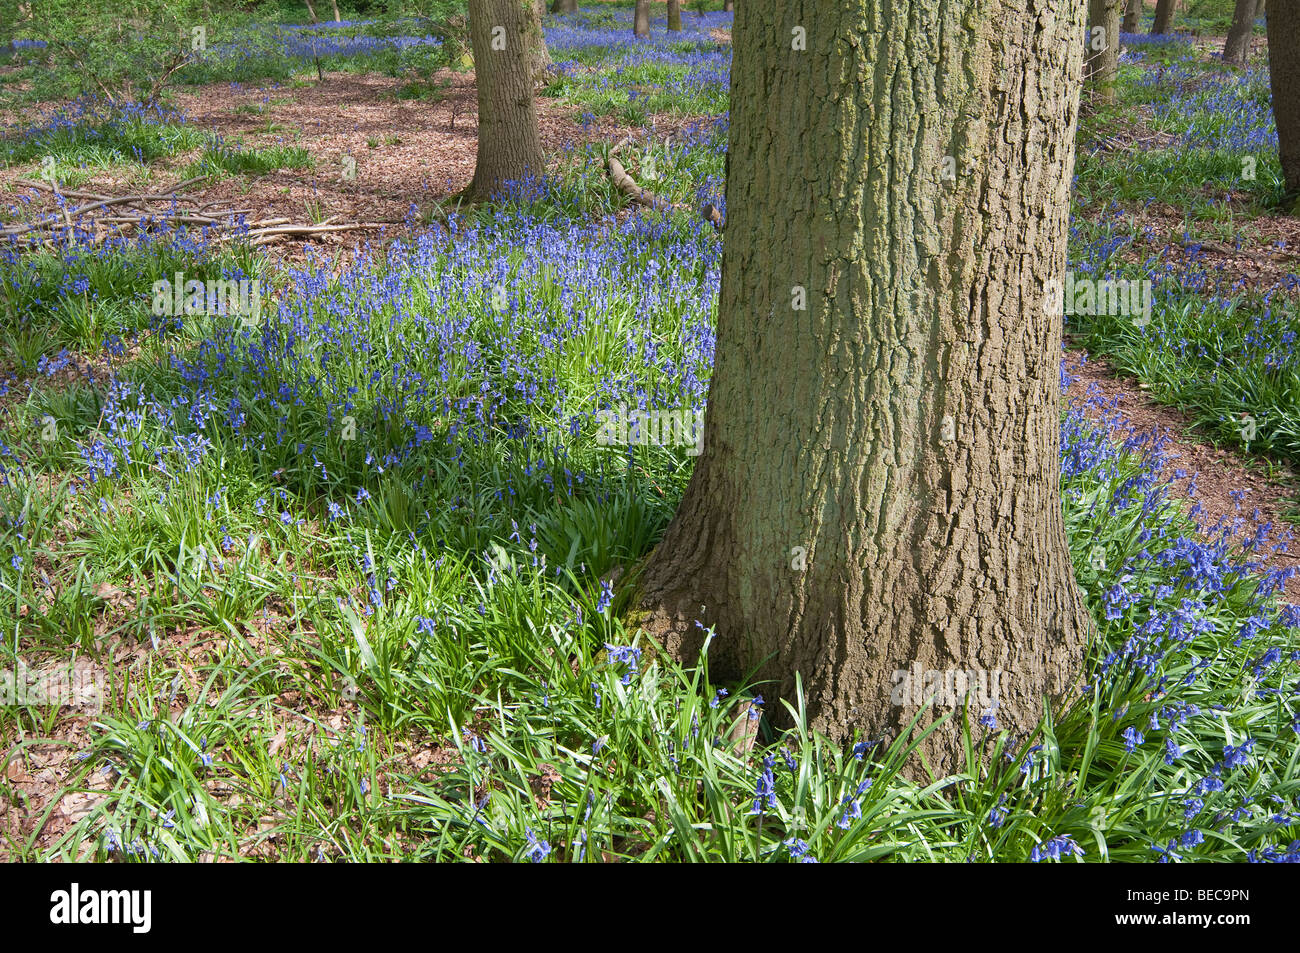 Footpath and Bluebells around the base of an Oak tree in an English Wood. Stock Photo